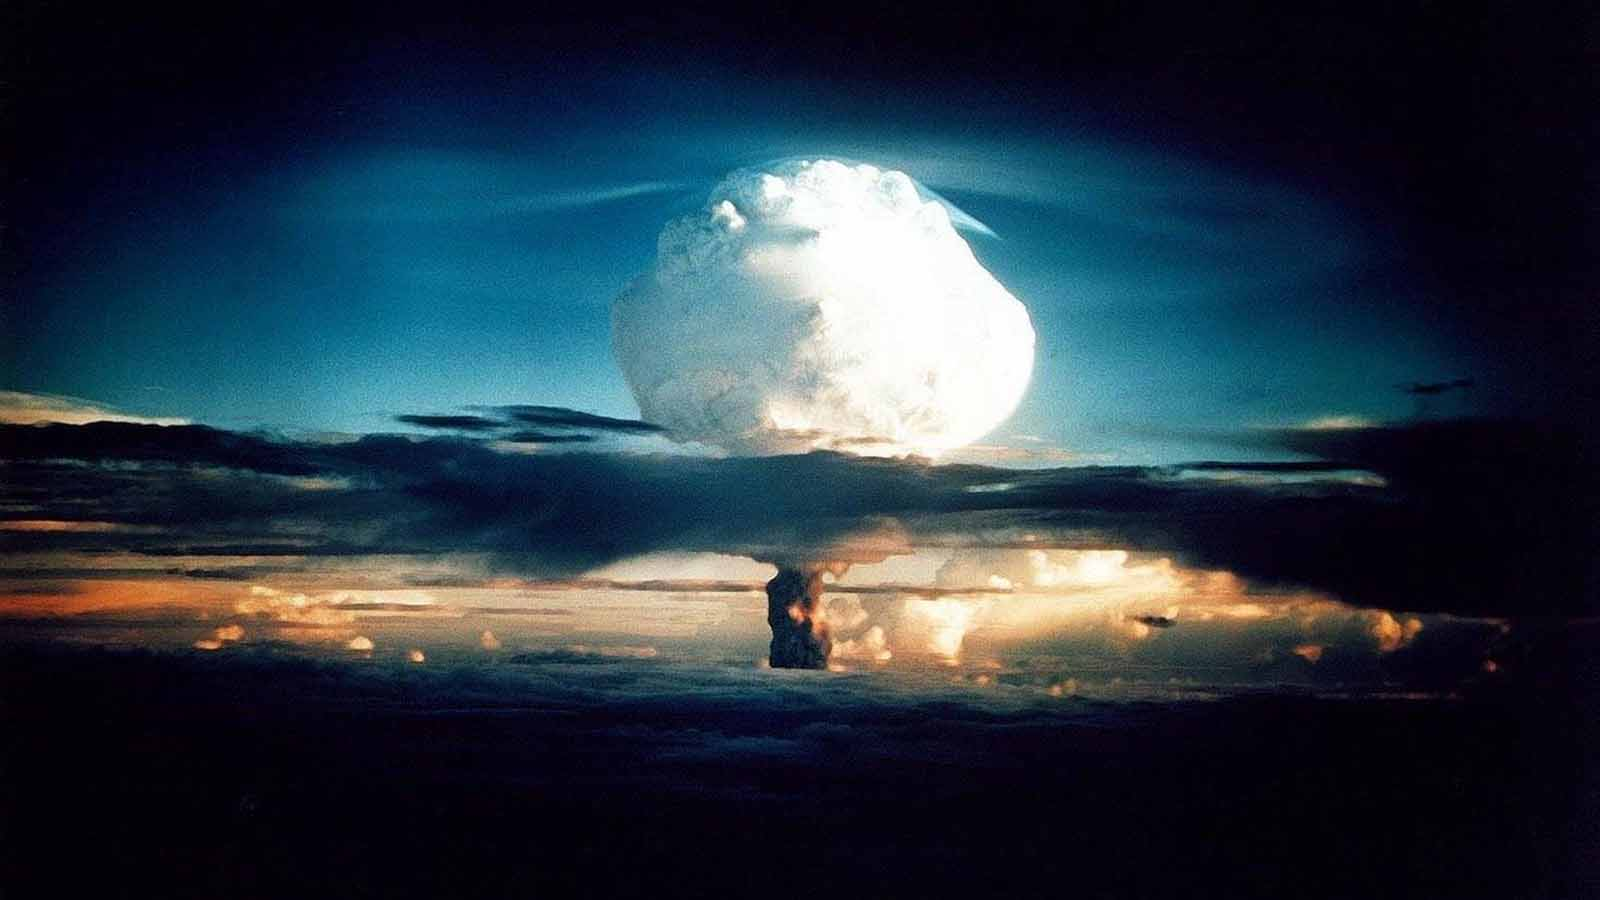 Hydrogen bomb explosion during a nuclear arms test.